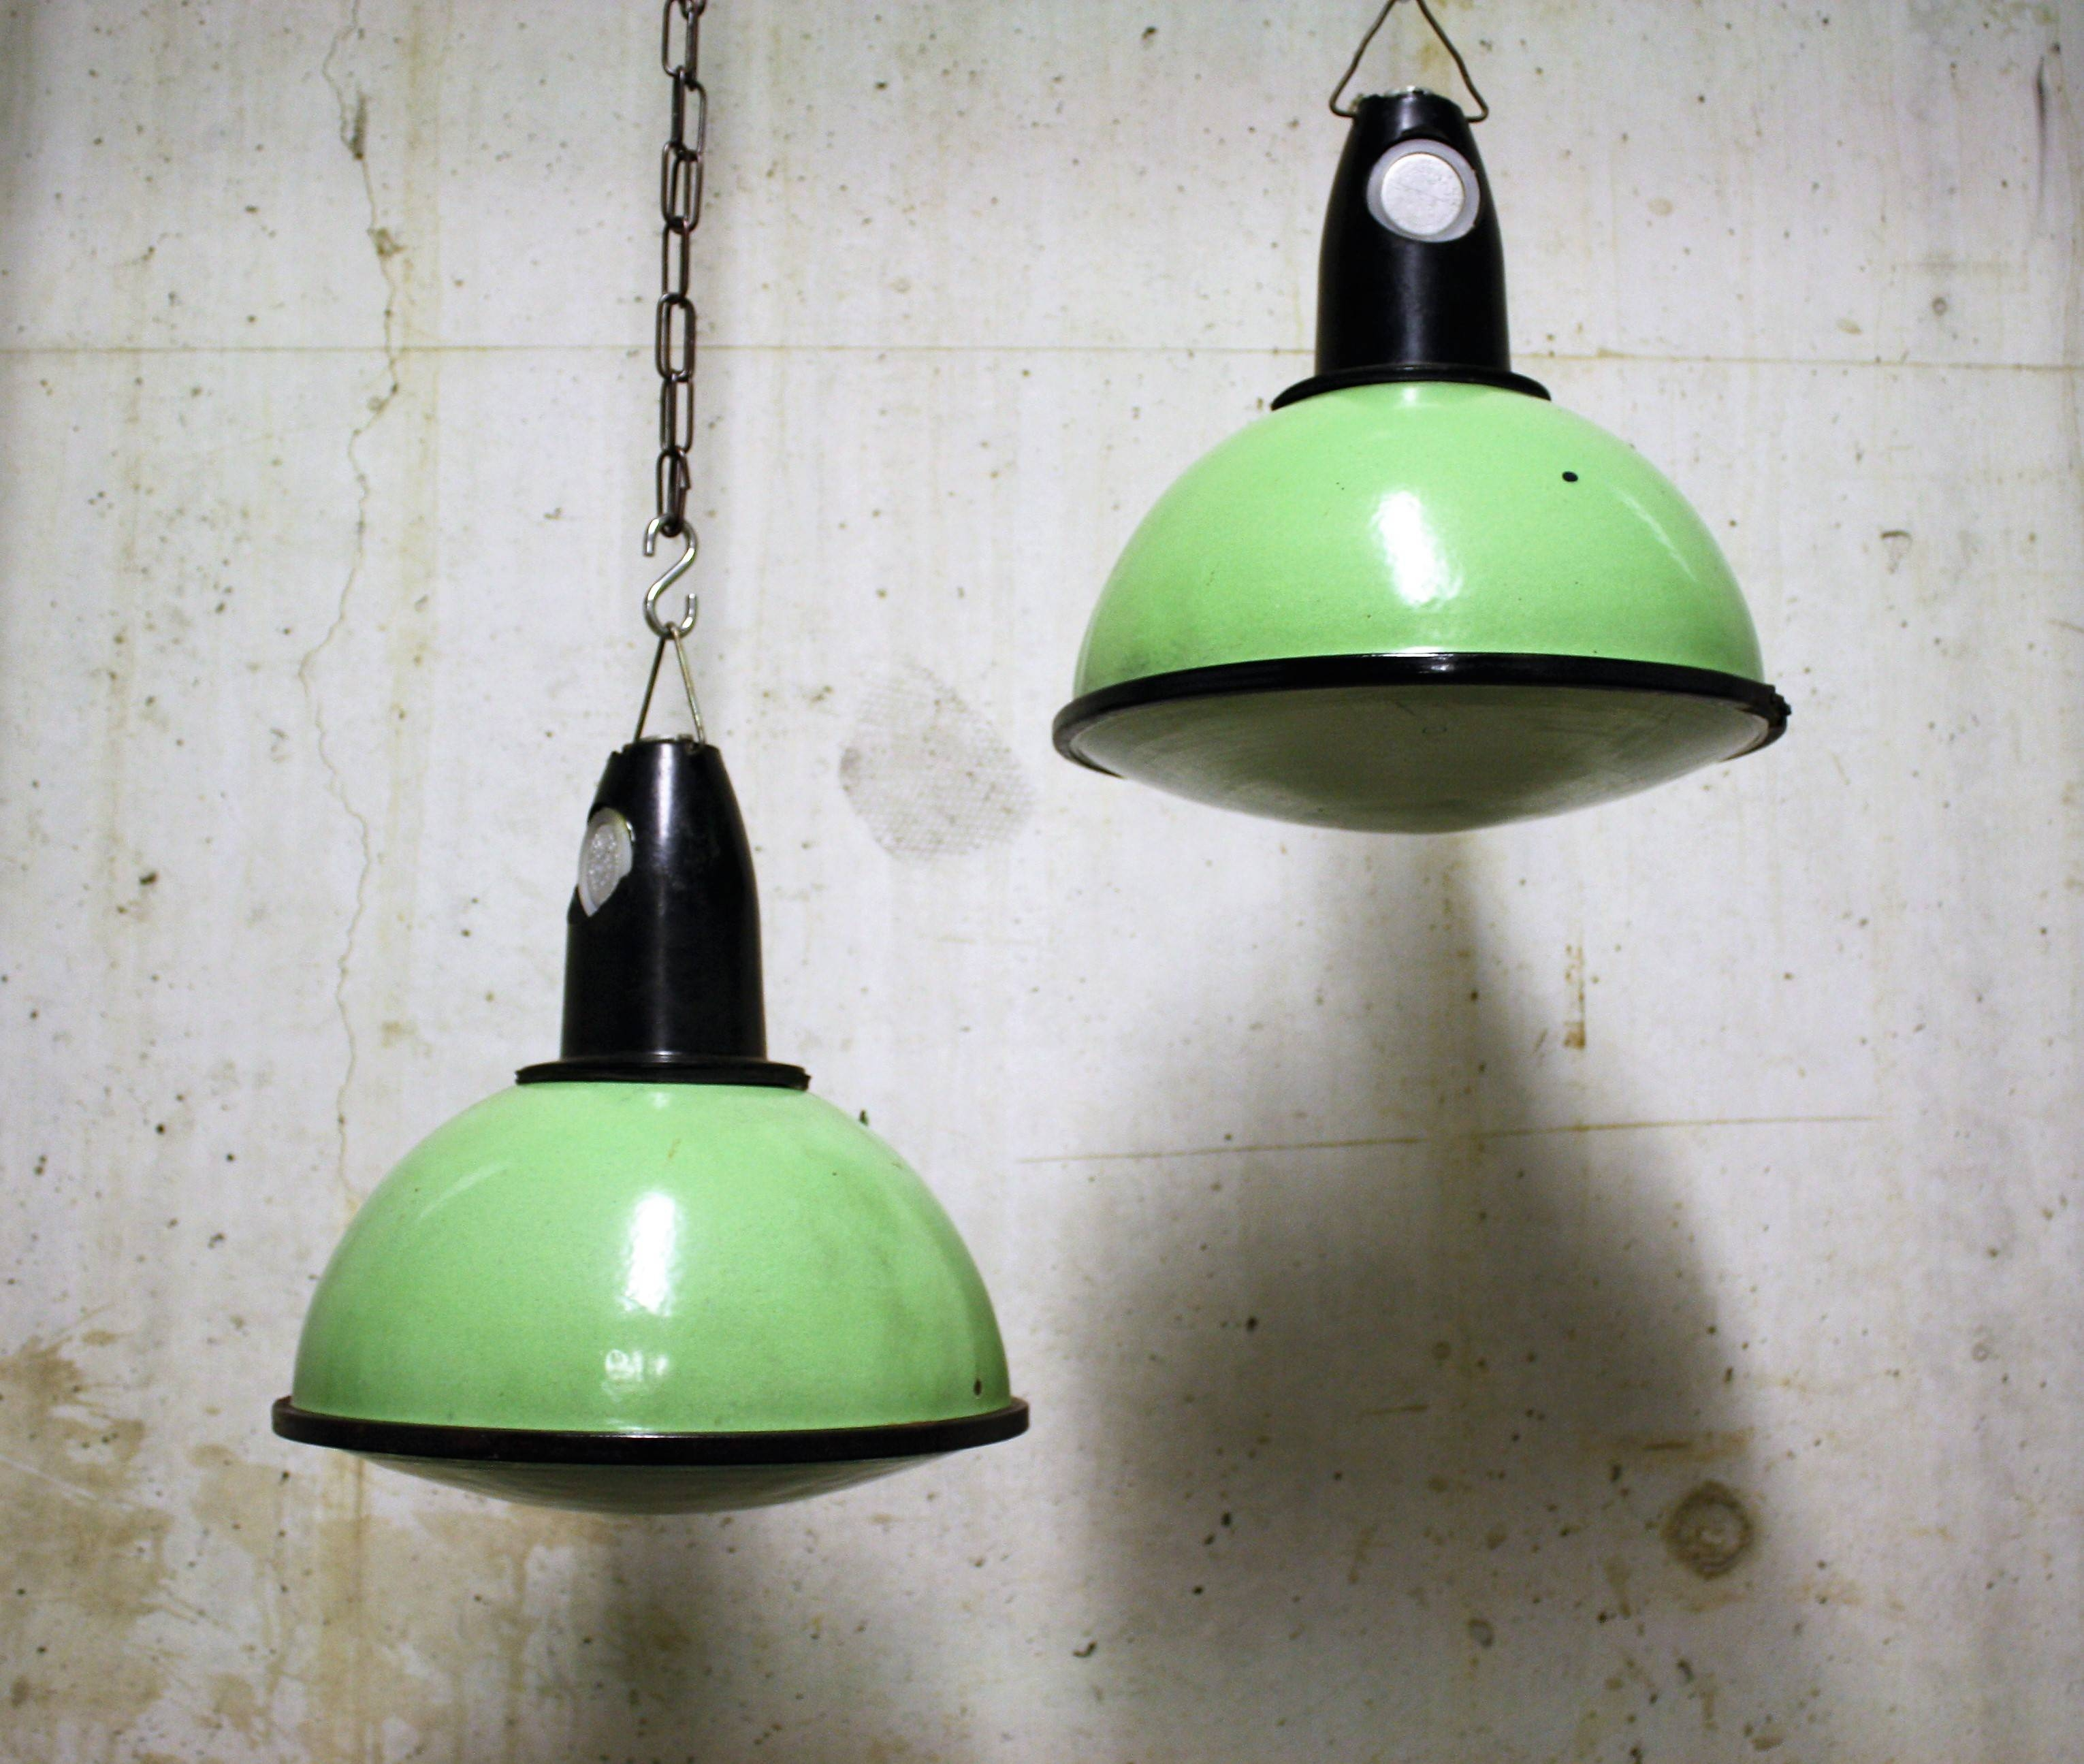 Green Industrial Pendant Lights With Glass 1960S (6Pcs) | Vinterior Throughout 1960S Pendant Lights (View 10 of 15)